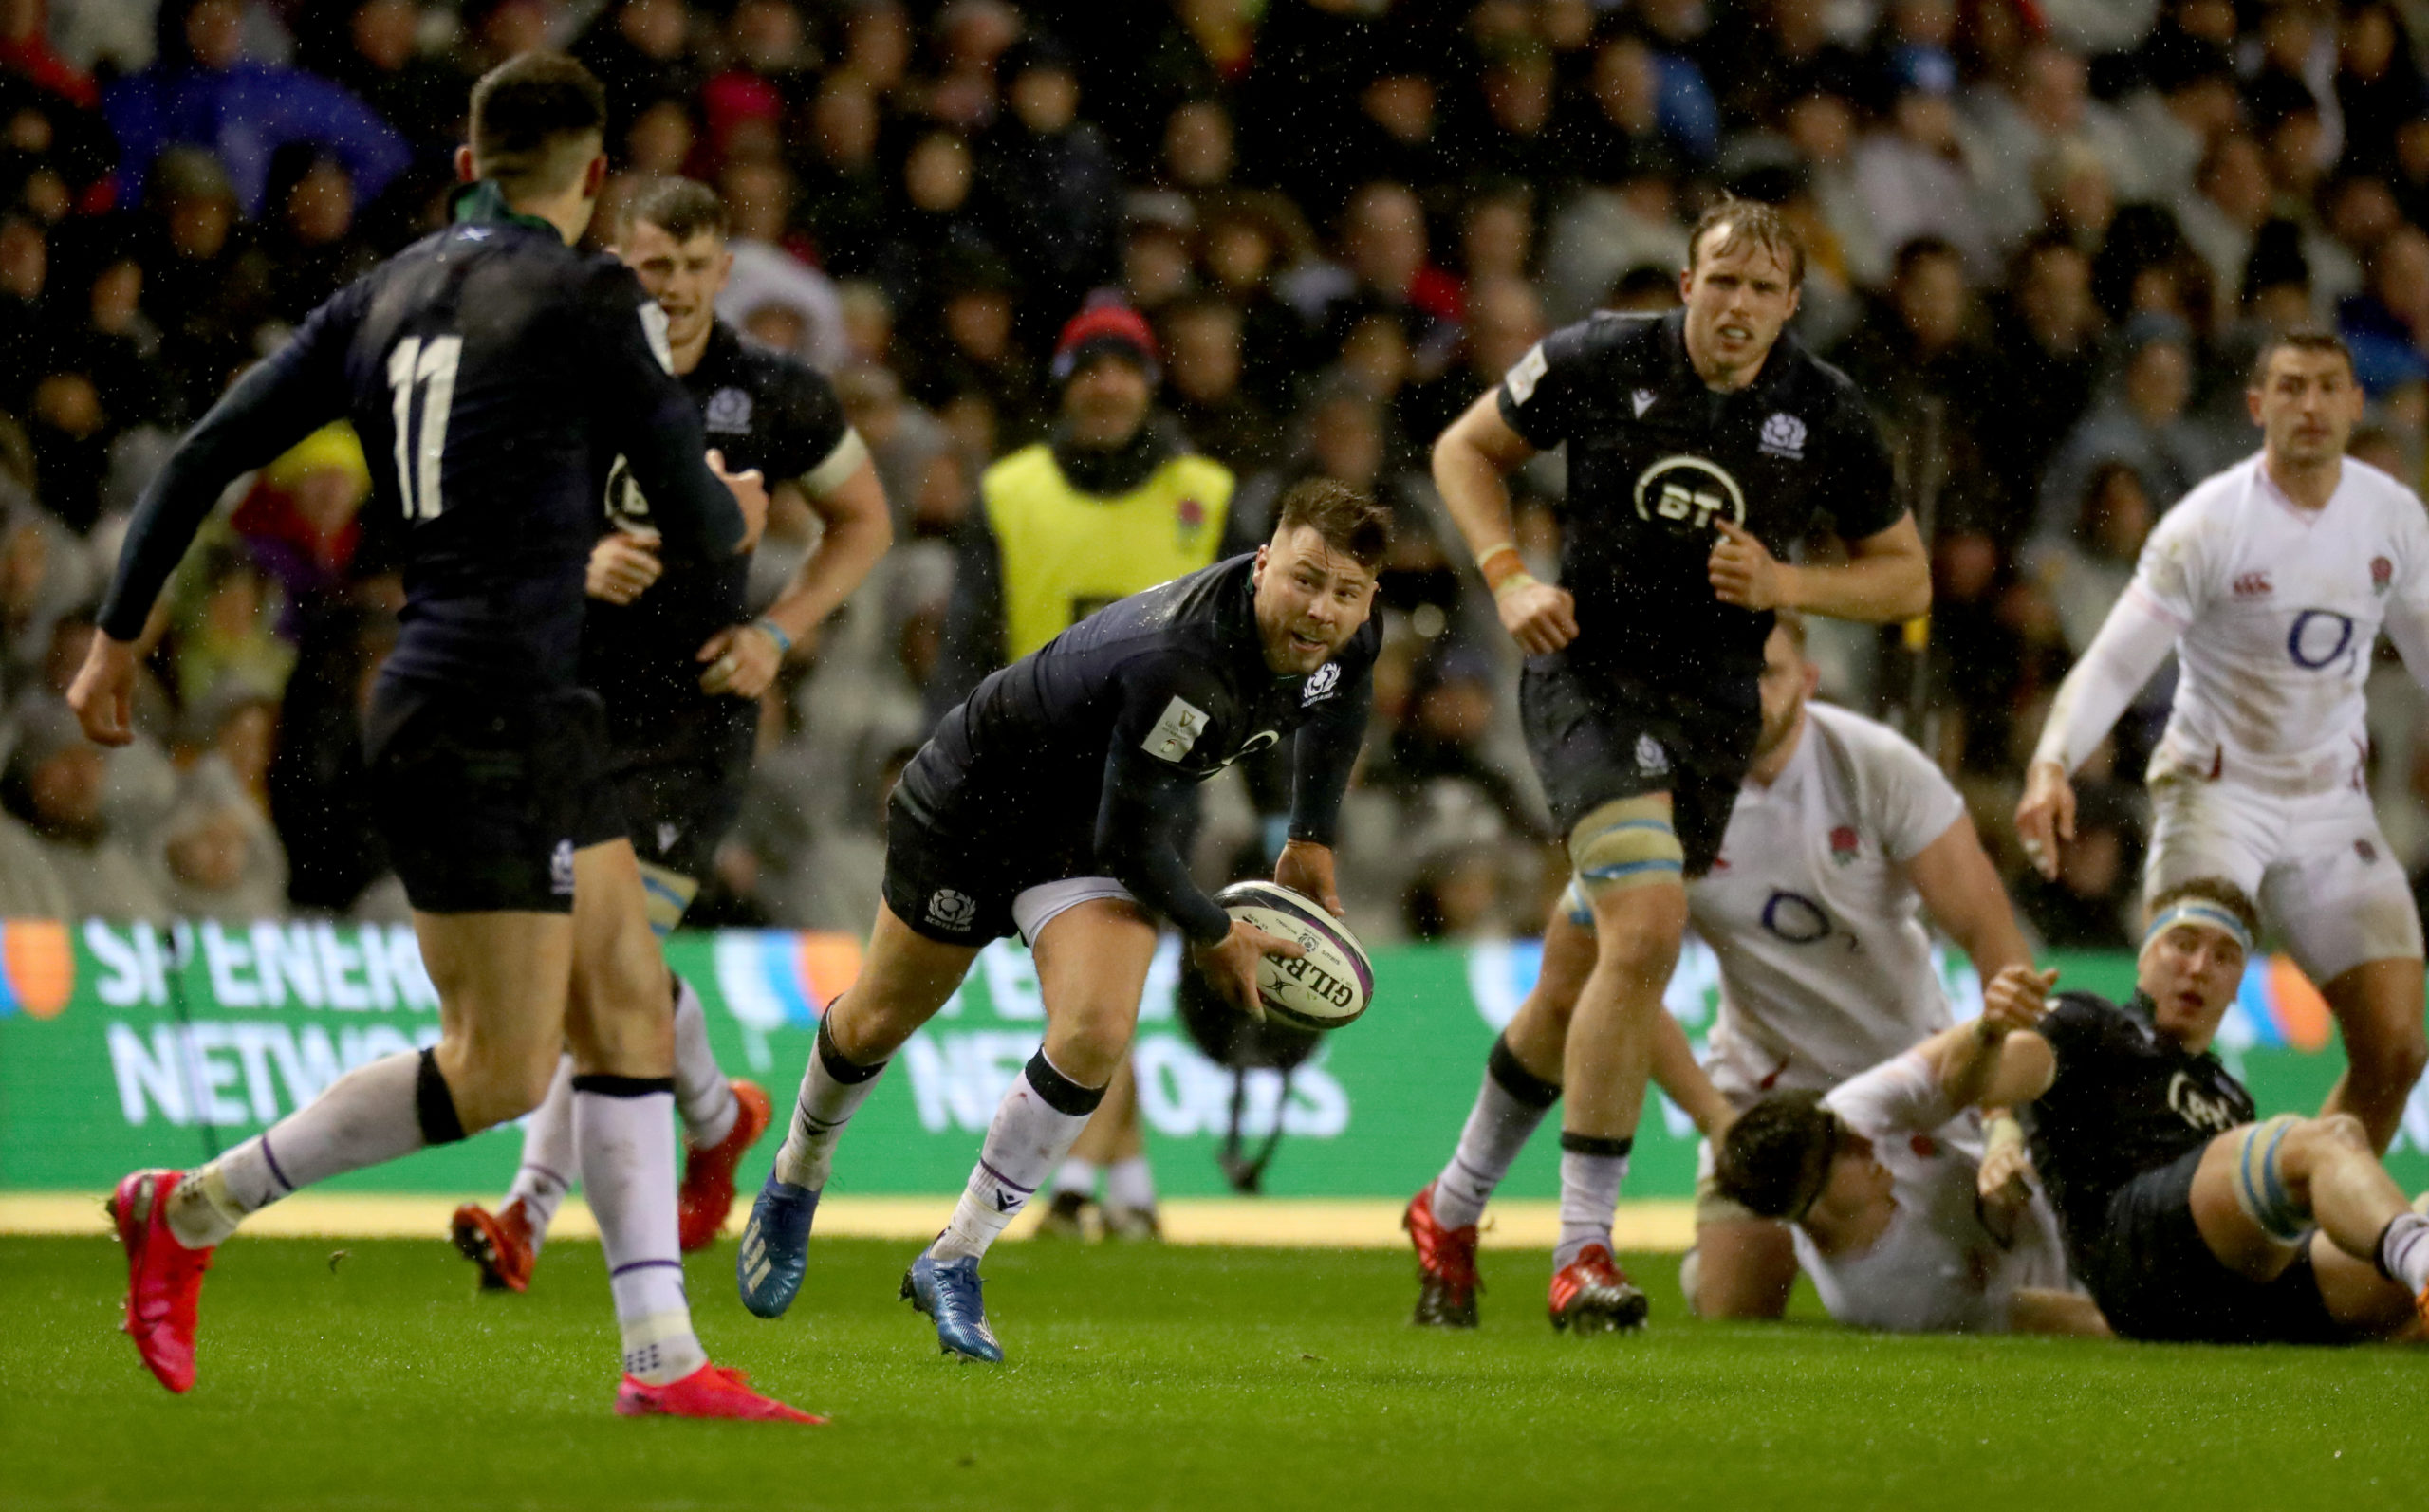 Ali Price tries to launch a Scotland attack against England.